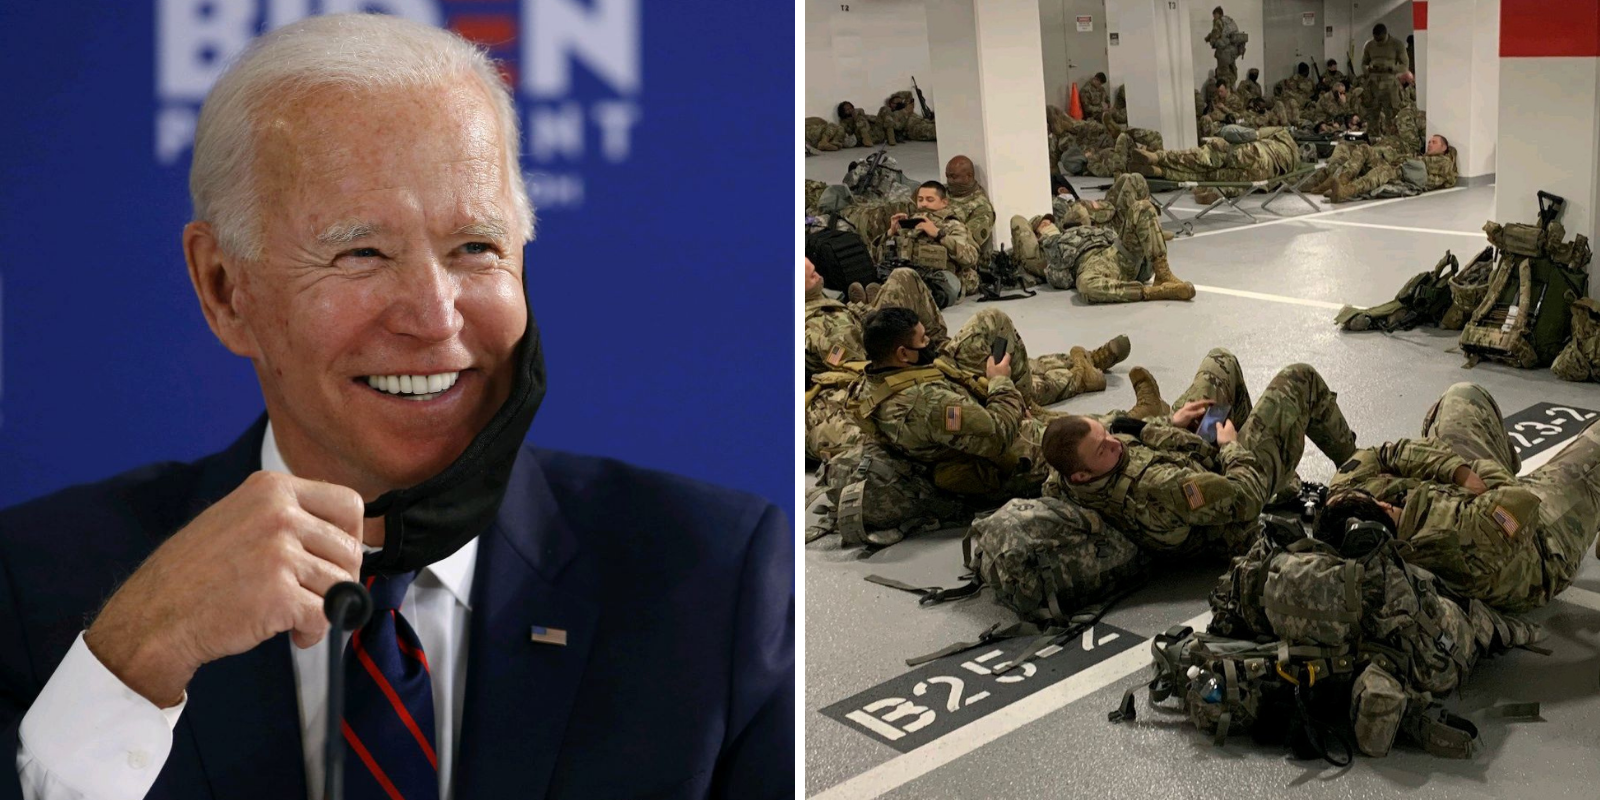 Media FAILS to ask Biden press sec one question about troops sleeping in parking garage